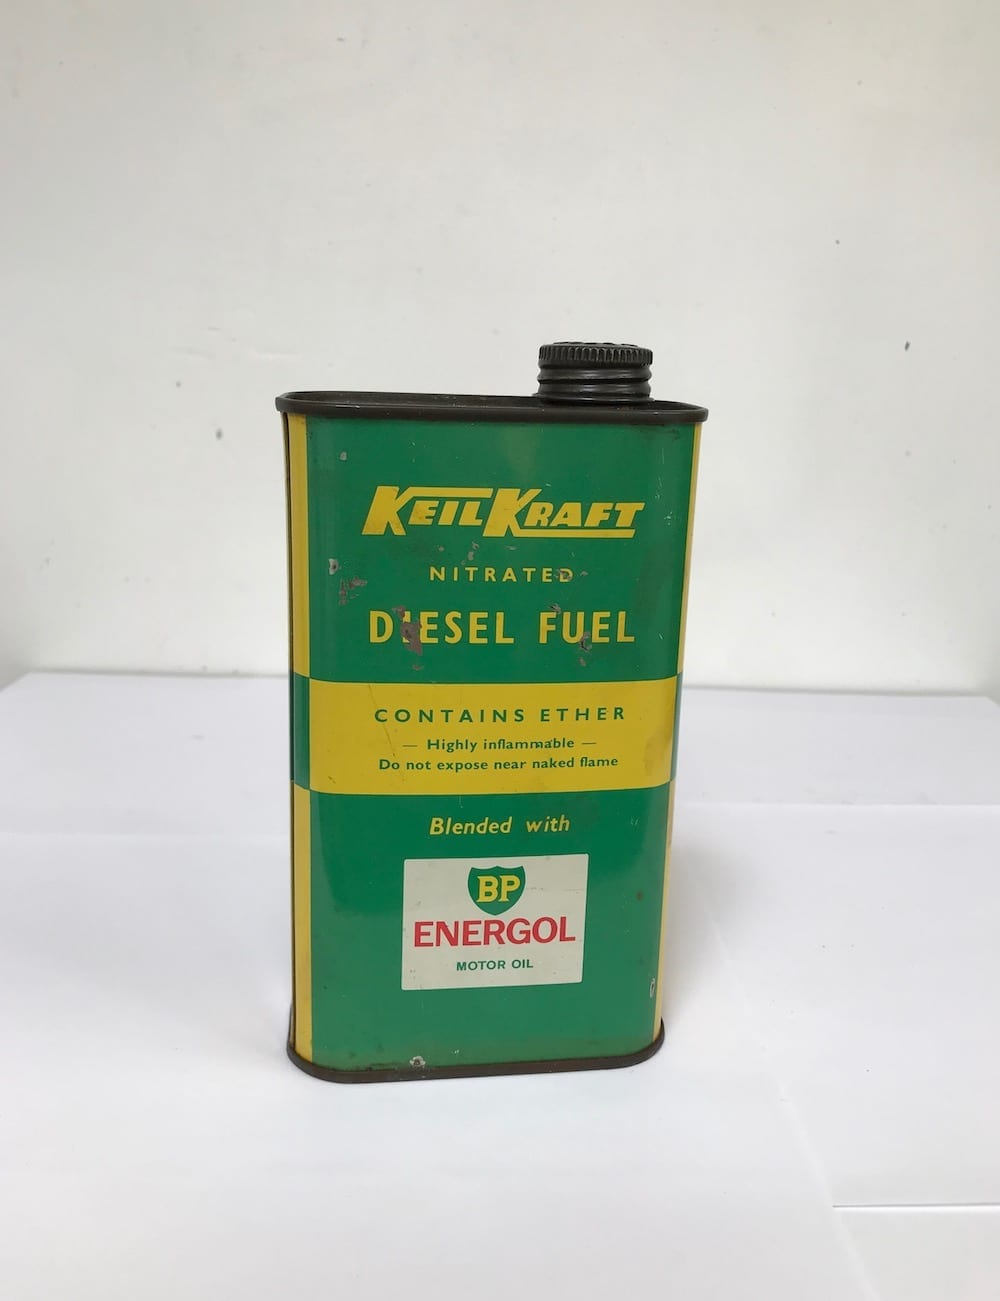 KIEL KRAFT DIESEL FUEL BLENDED WITH B.P. ENERGOL ONE PINT CAN. - Vintage Motoring UK